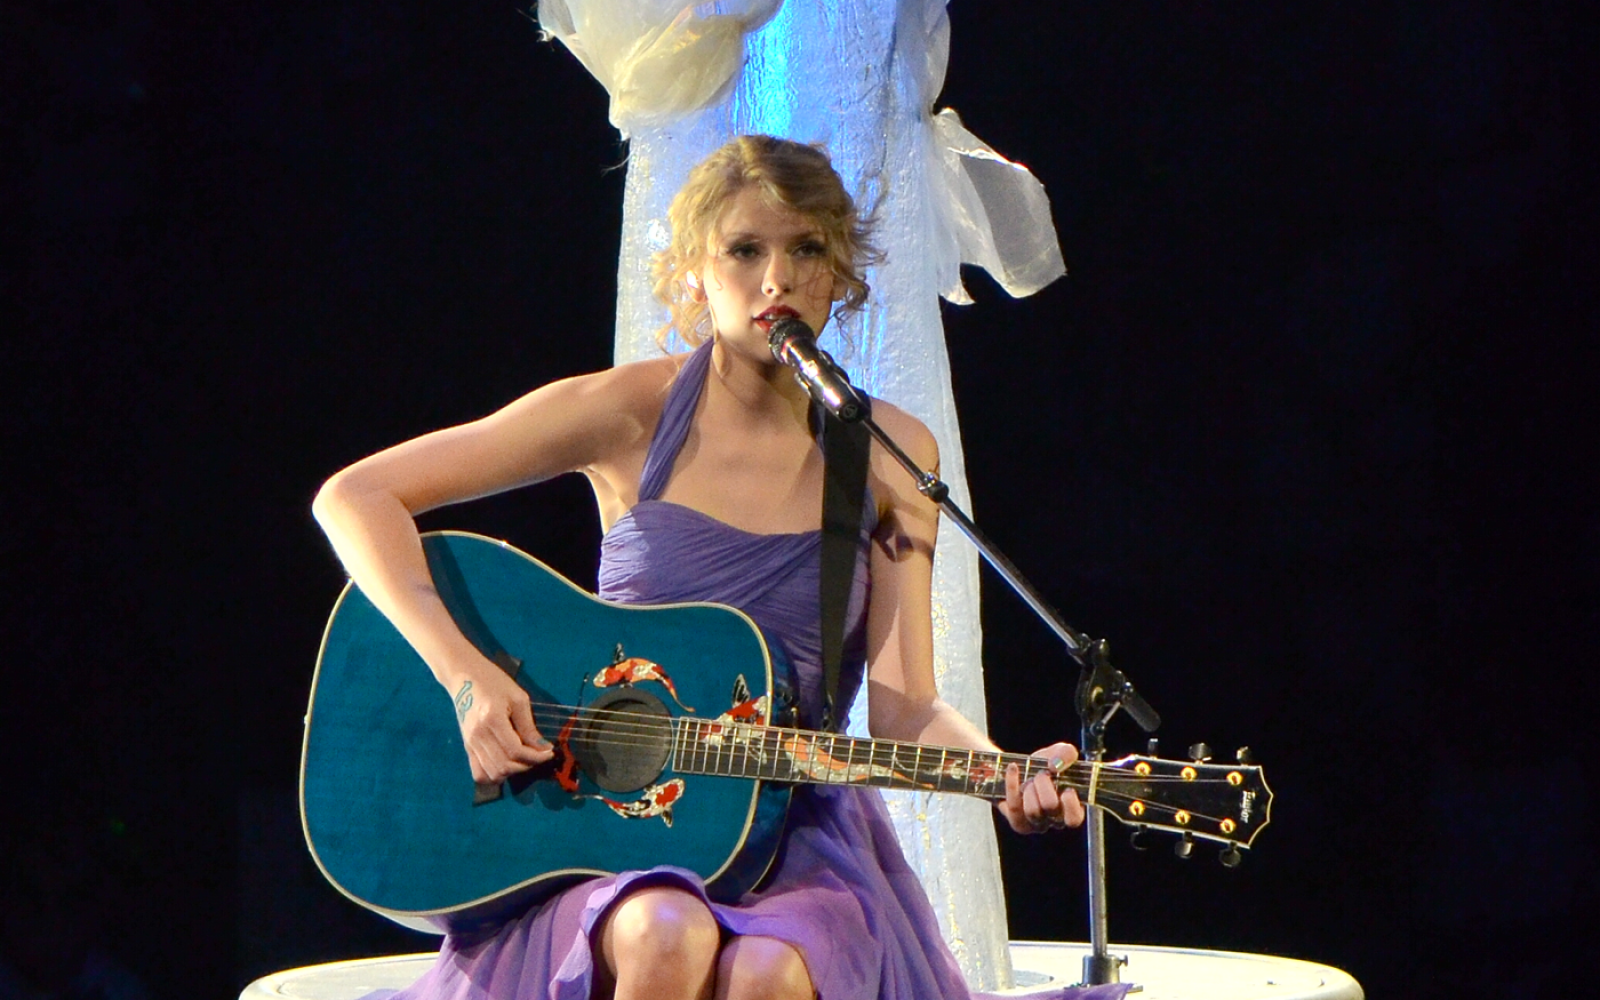 24 Times Taylor Swift Understood Our Breakup And Felt Through The Confusion That Is Tainted Love